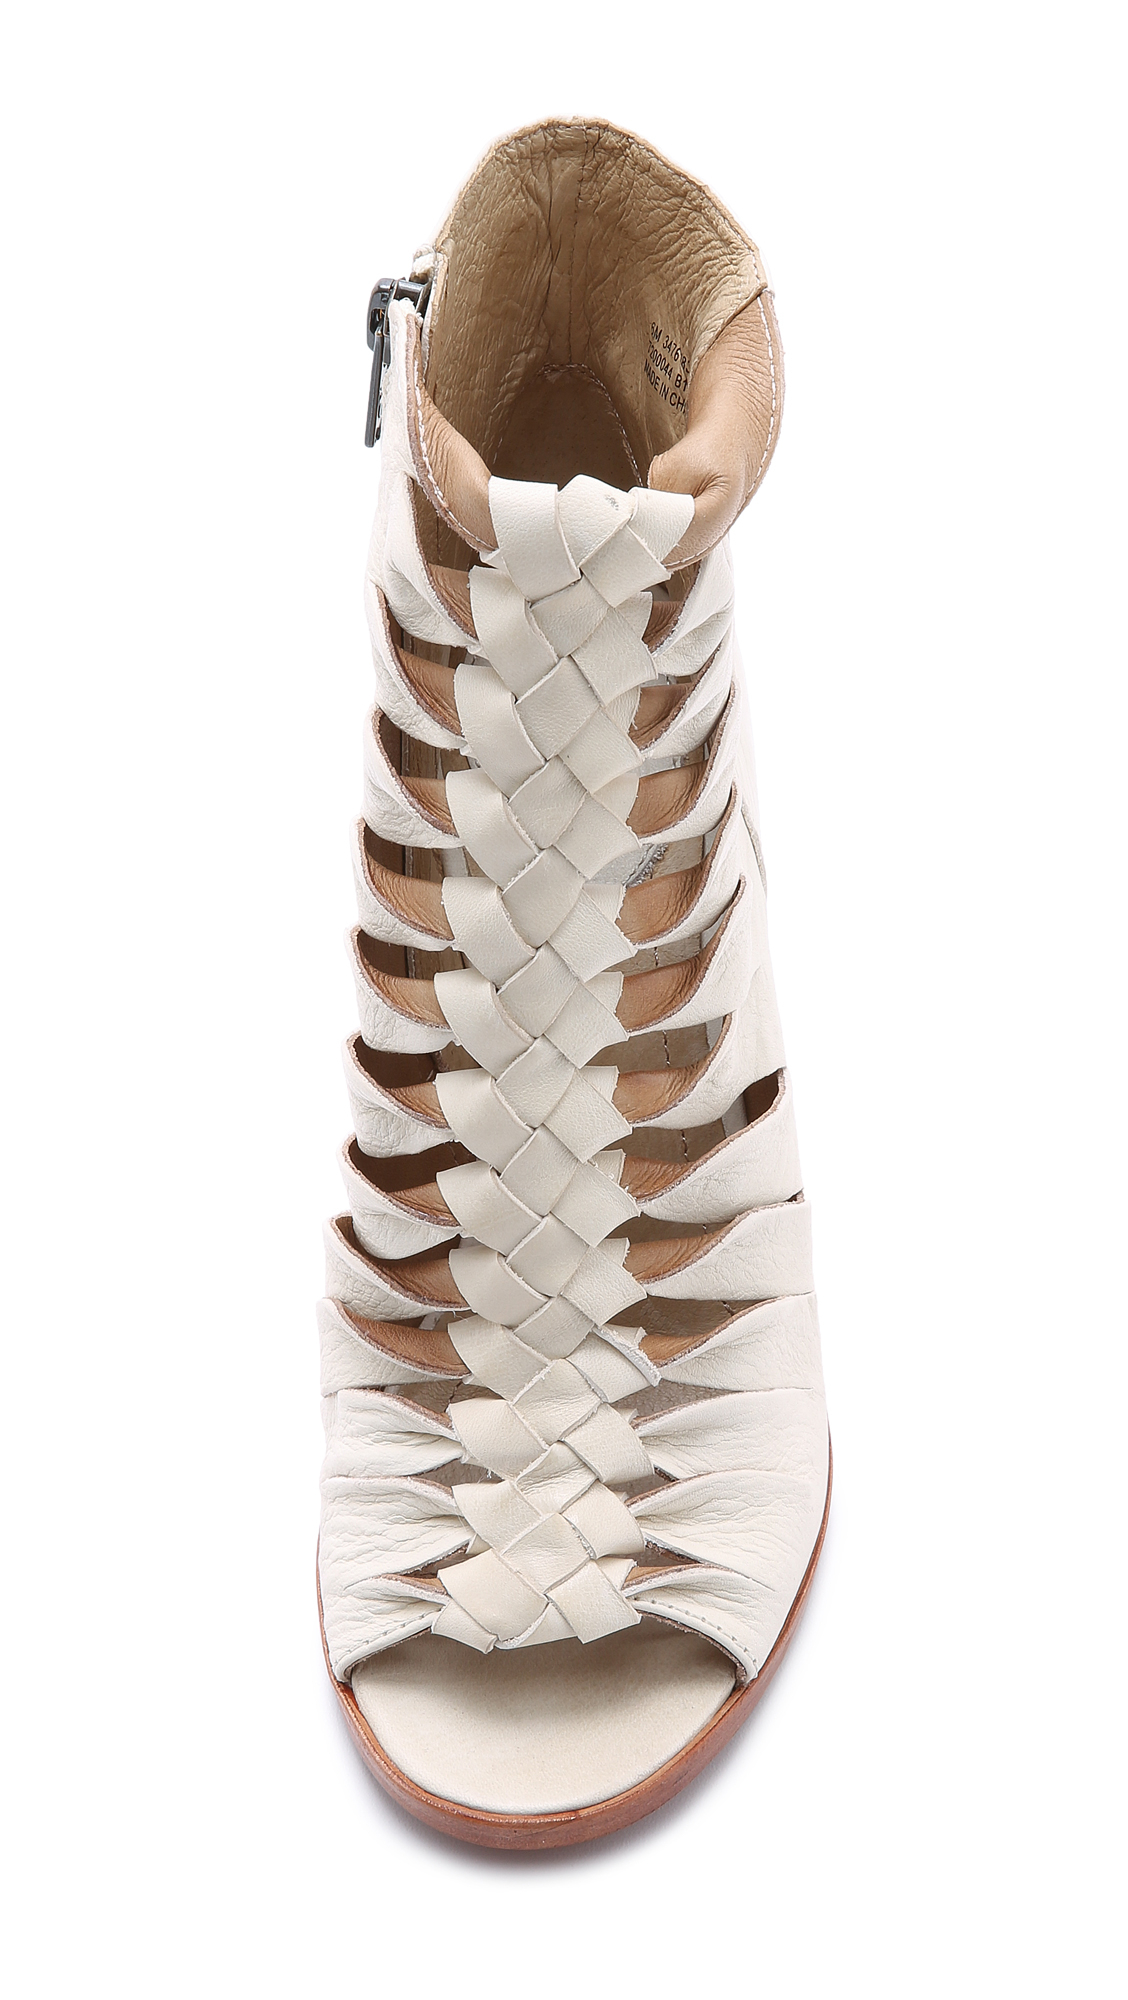 Frye Sofia Braided Booties - Off White in Natural